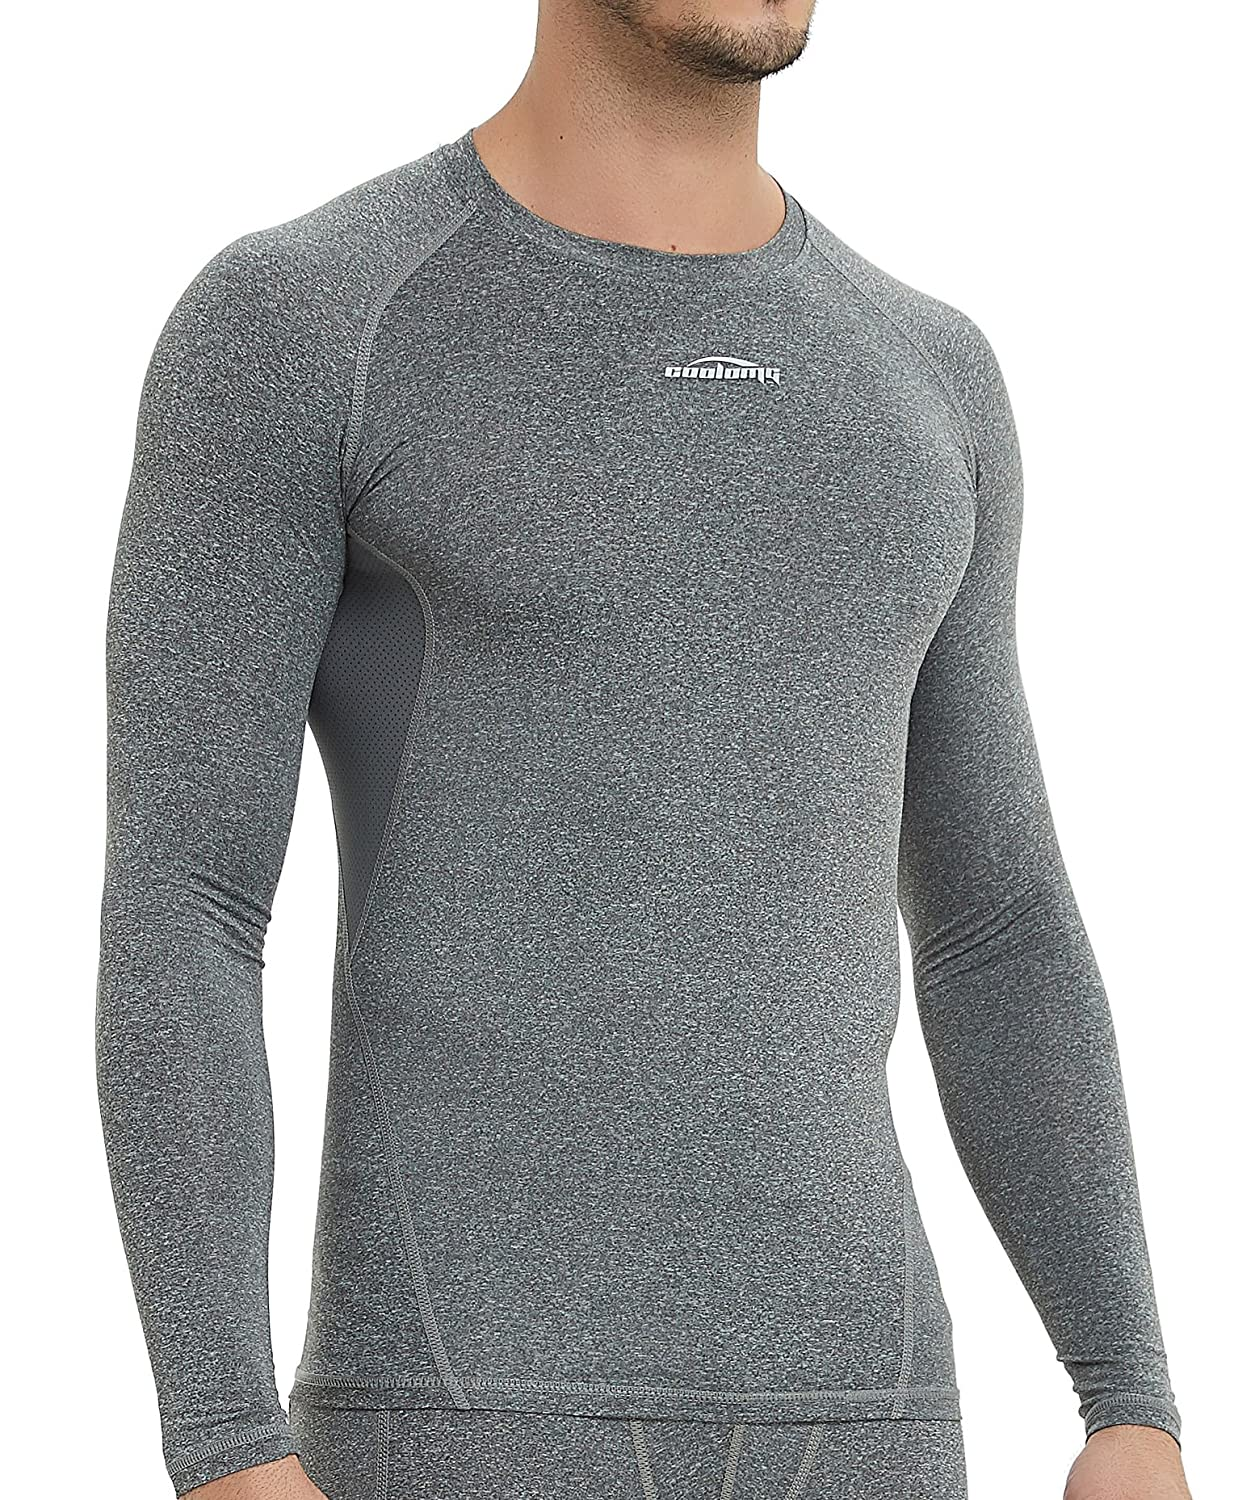 COOLOMG Men's Cool Dry Fit Long Sleeve T-Shirt Baselayer Top Compression Shirt